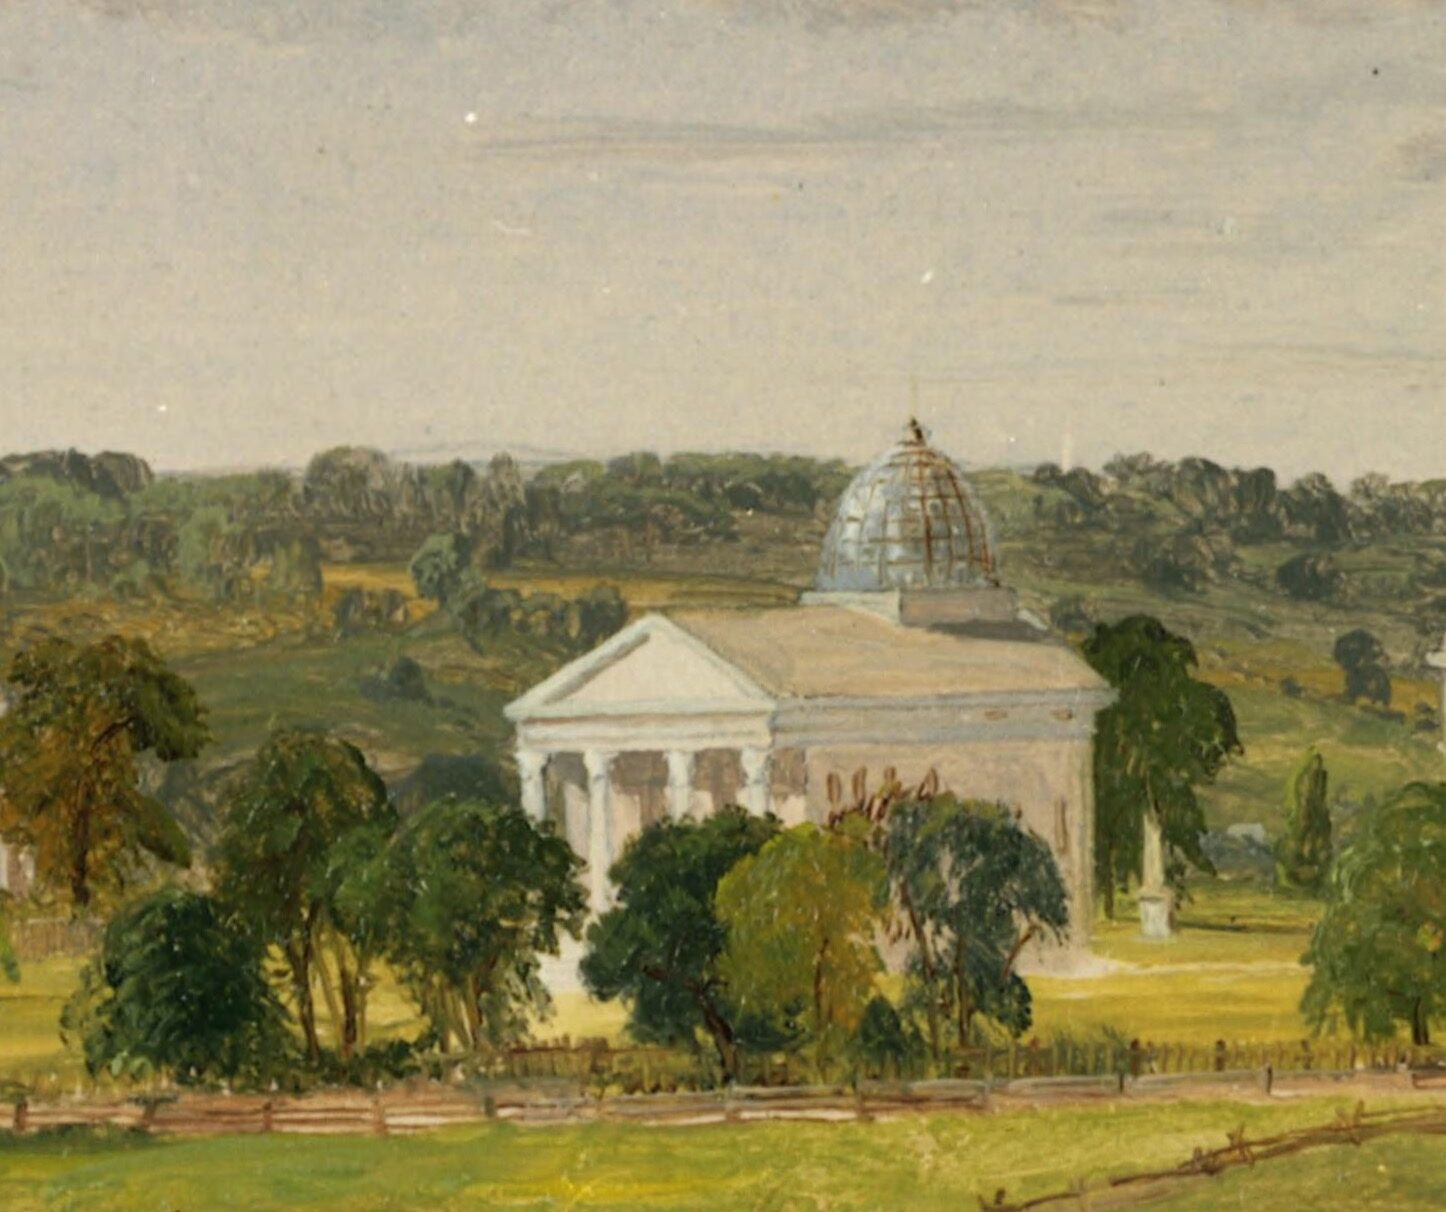 The Medical Building is the newest structure in Cropsey's painting.